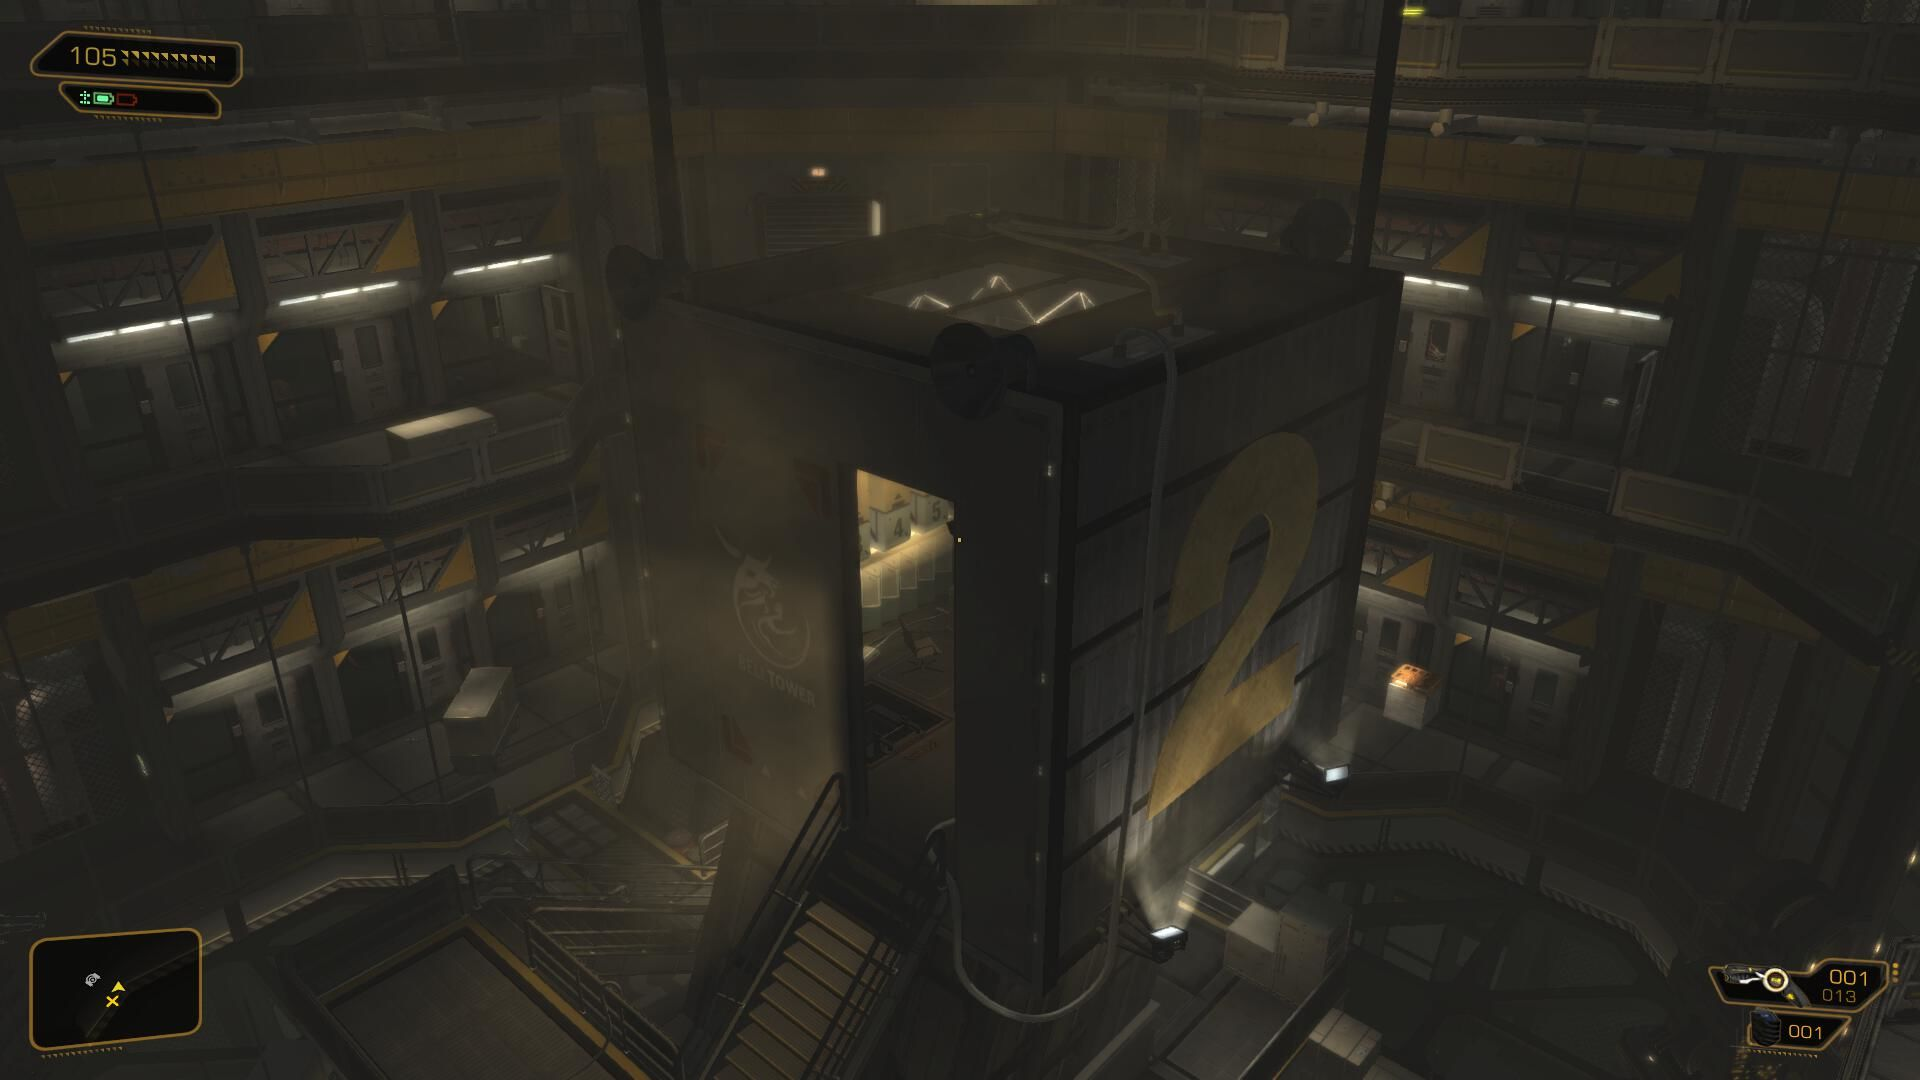 Deus Ex: Human Revolution - The Missing Link Windows The third area of the game